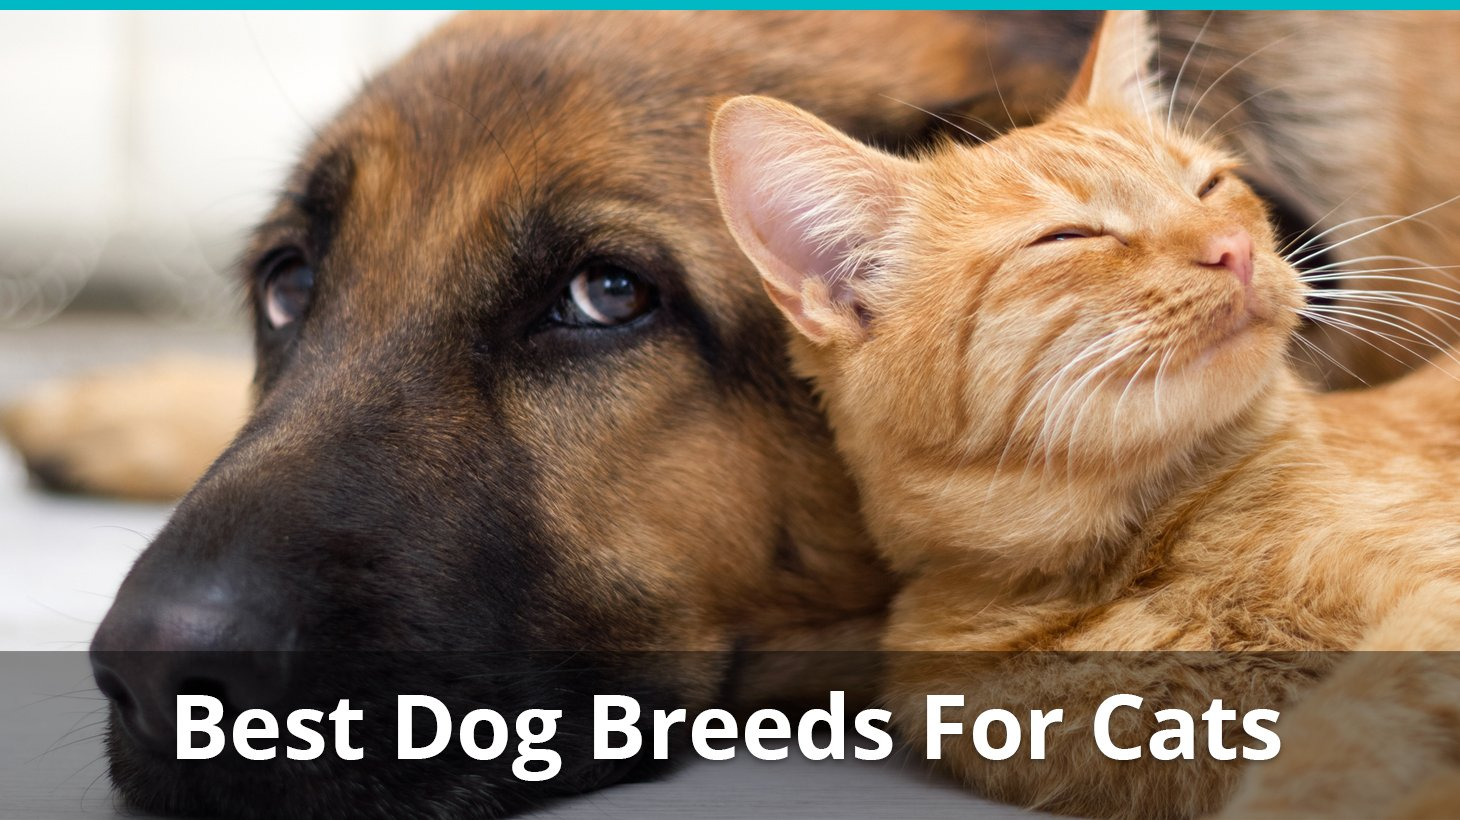 What Are The Best Dog Breeds For Cats To Get Along With